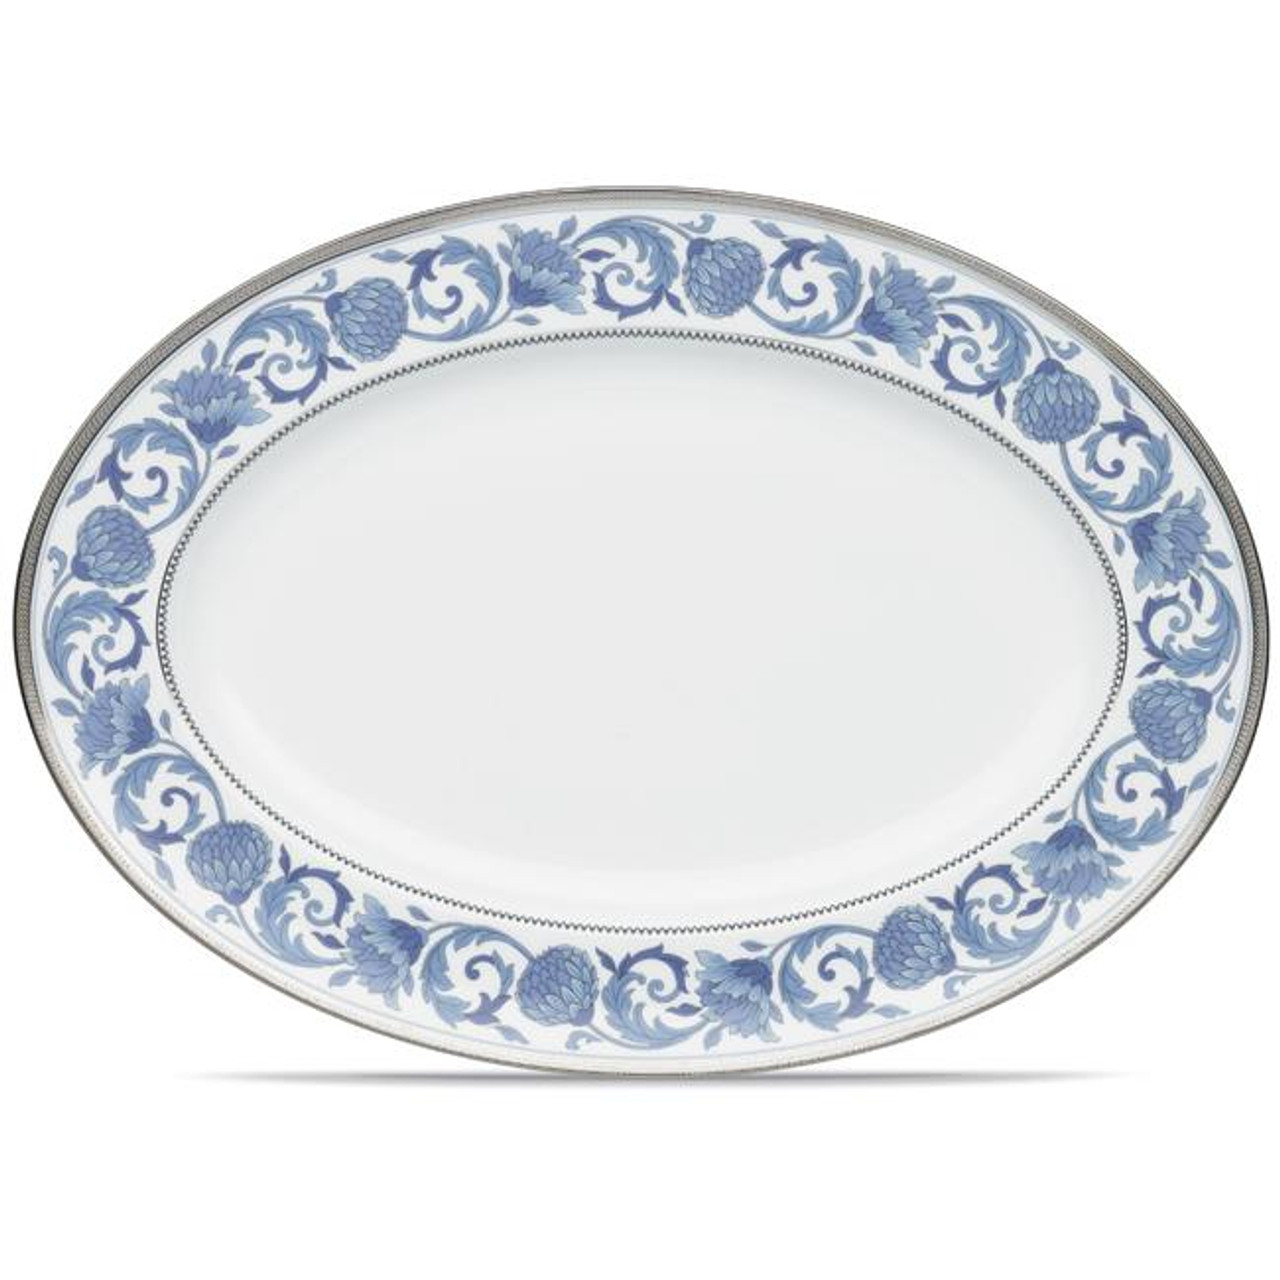 4893 414 Sonnet In Blue 16 Oval Platter By Noritake